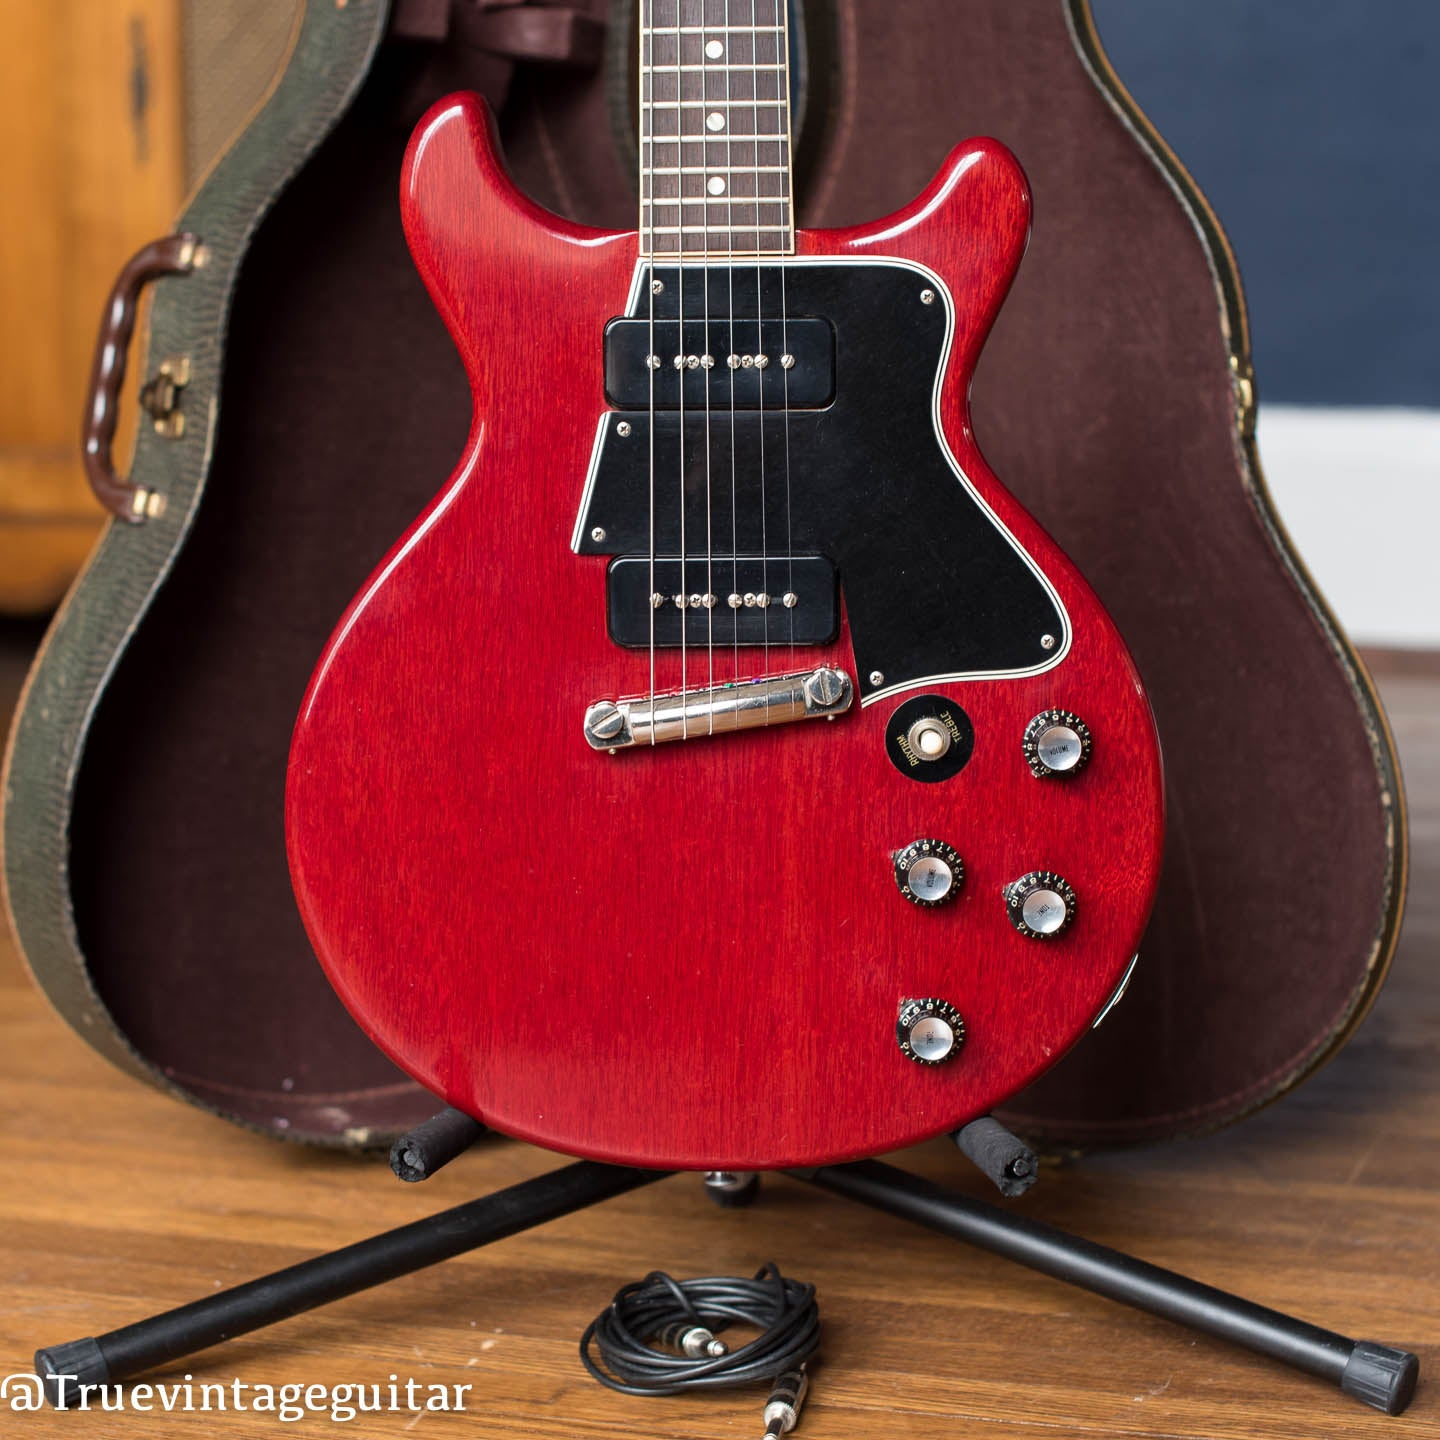 Gibson SG Special vintage electric guitar